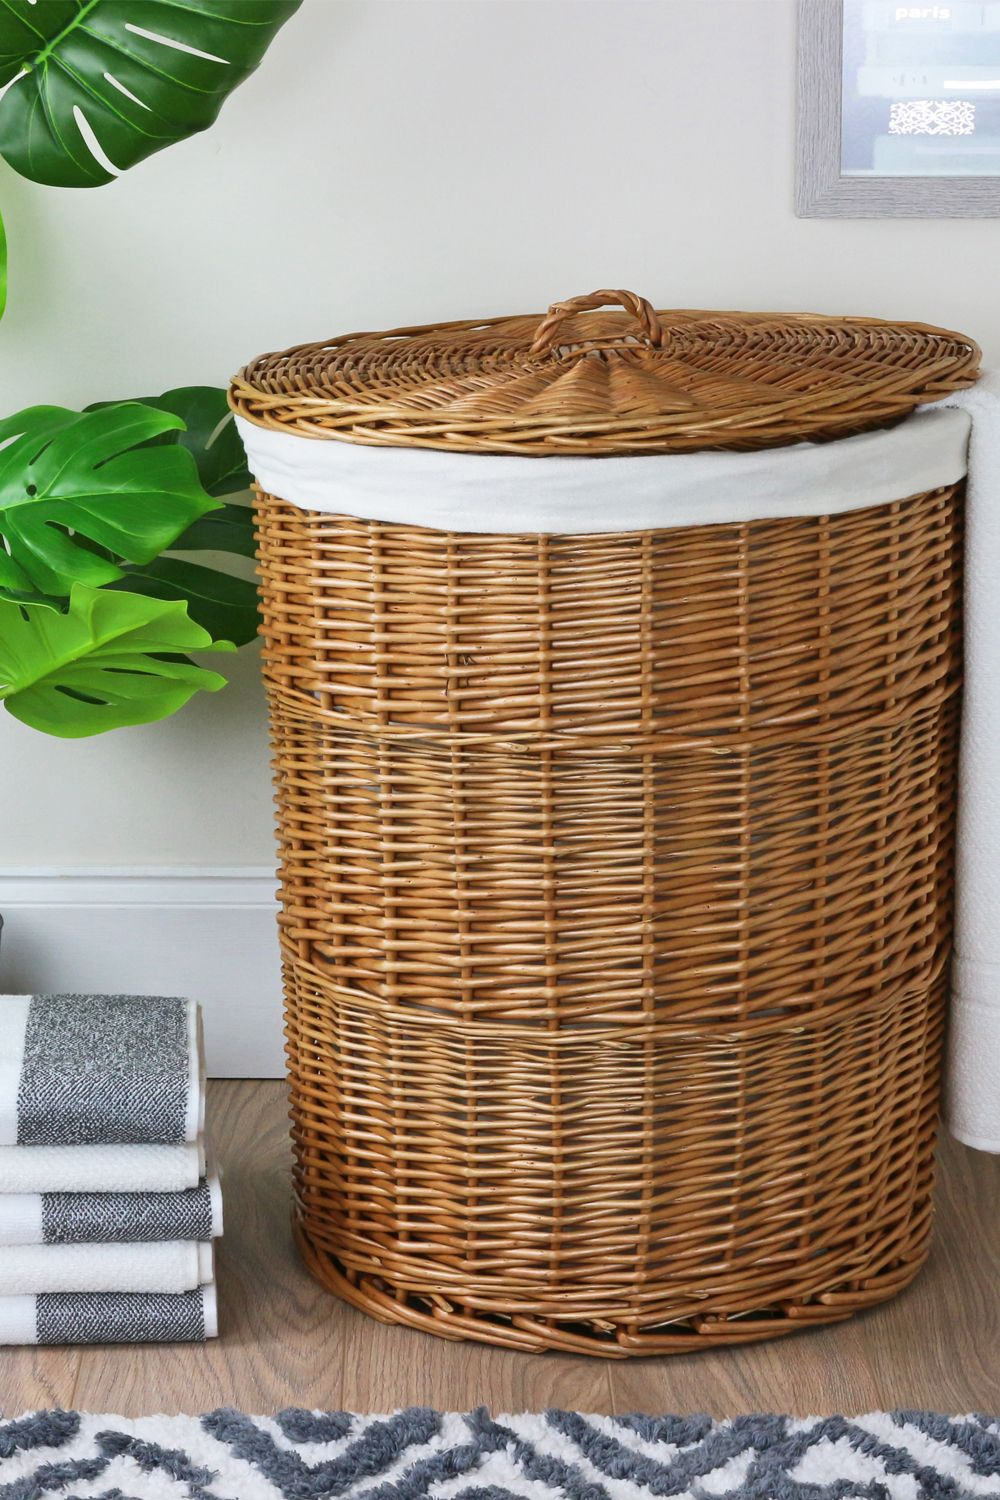 Round Natural Wicker Laundry Basket In 2020 Wicker Baskets With Handles Wicker Basket